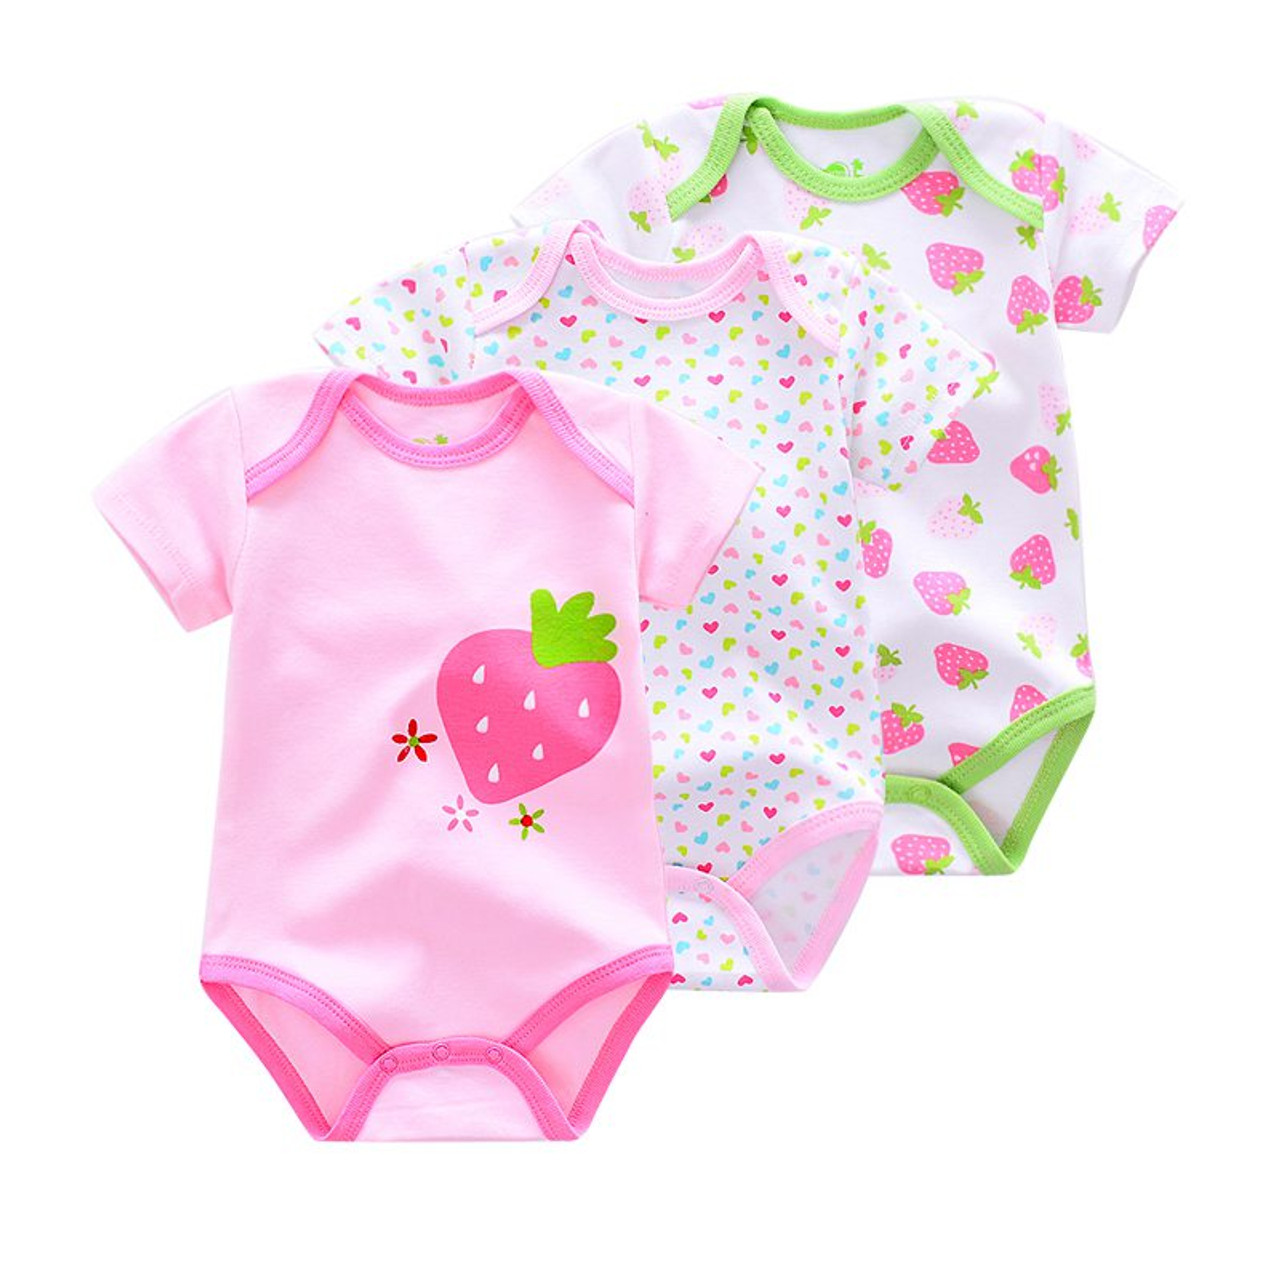 e59ae639936eb ... 3 Pieces/lot Brand Summer Baby Boys Romper Animal style Short Sleeve  cotton infant rompers ...